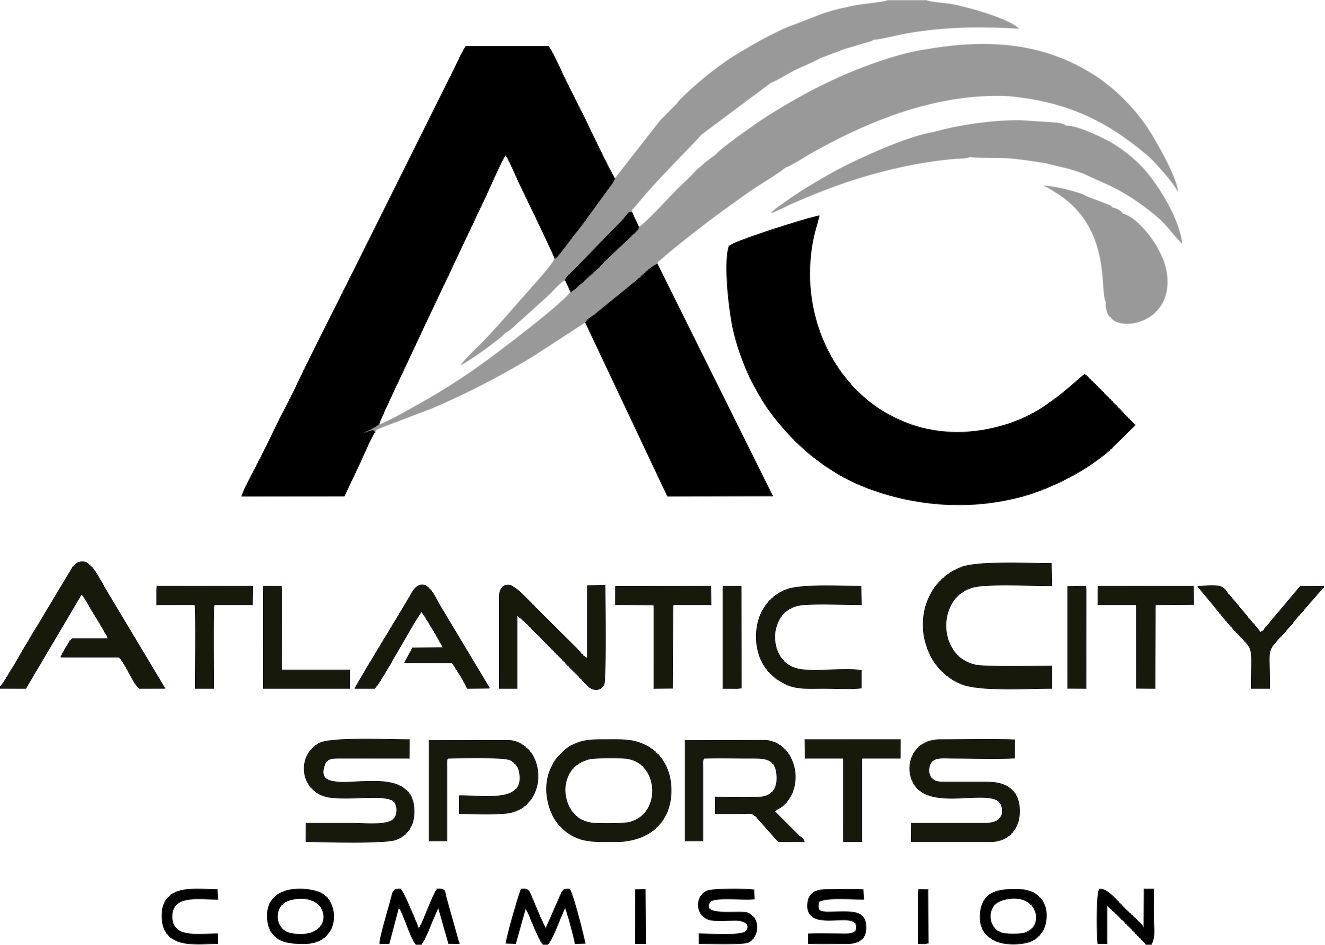 In conjunction with Atlantic City Sports Commission